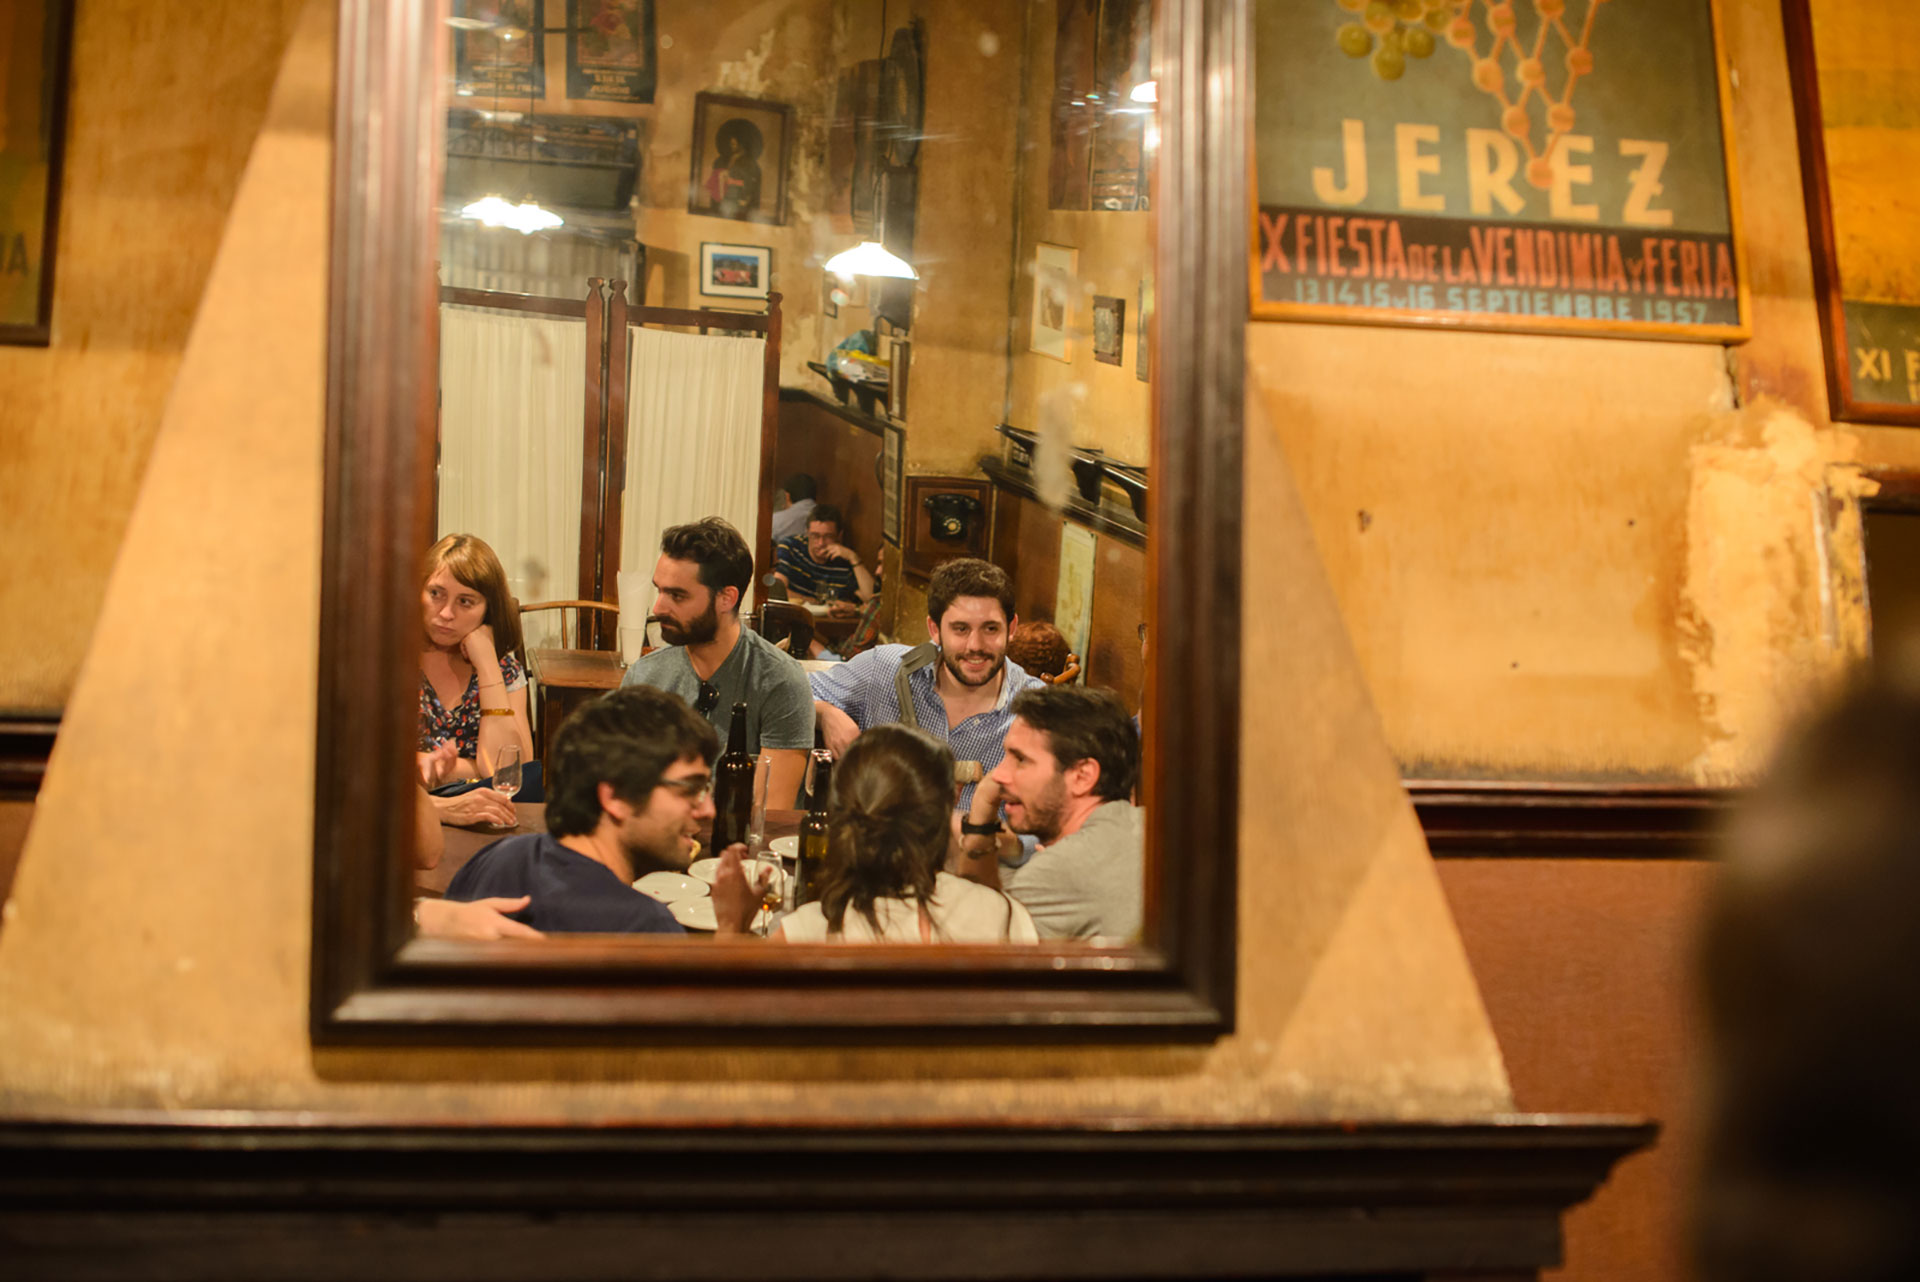 madrid-tapas-venencia-insiders-madrid-tapas-tour